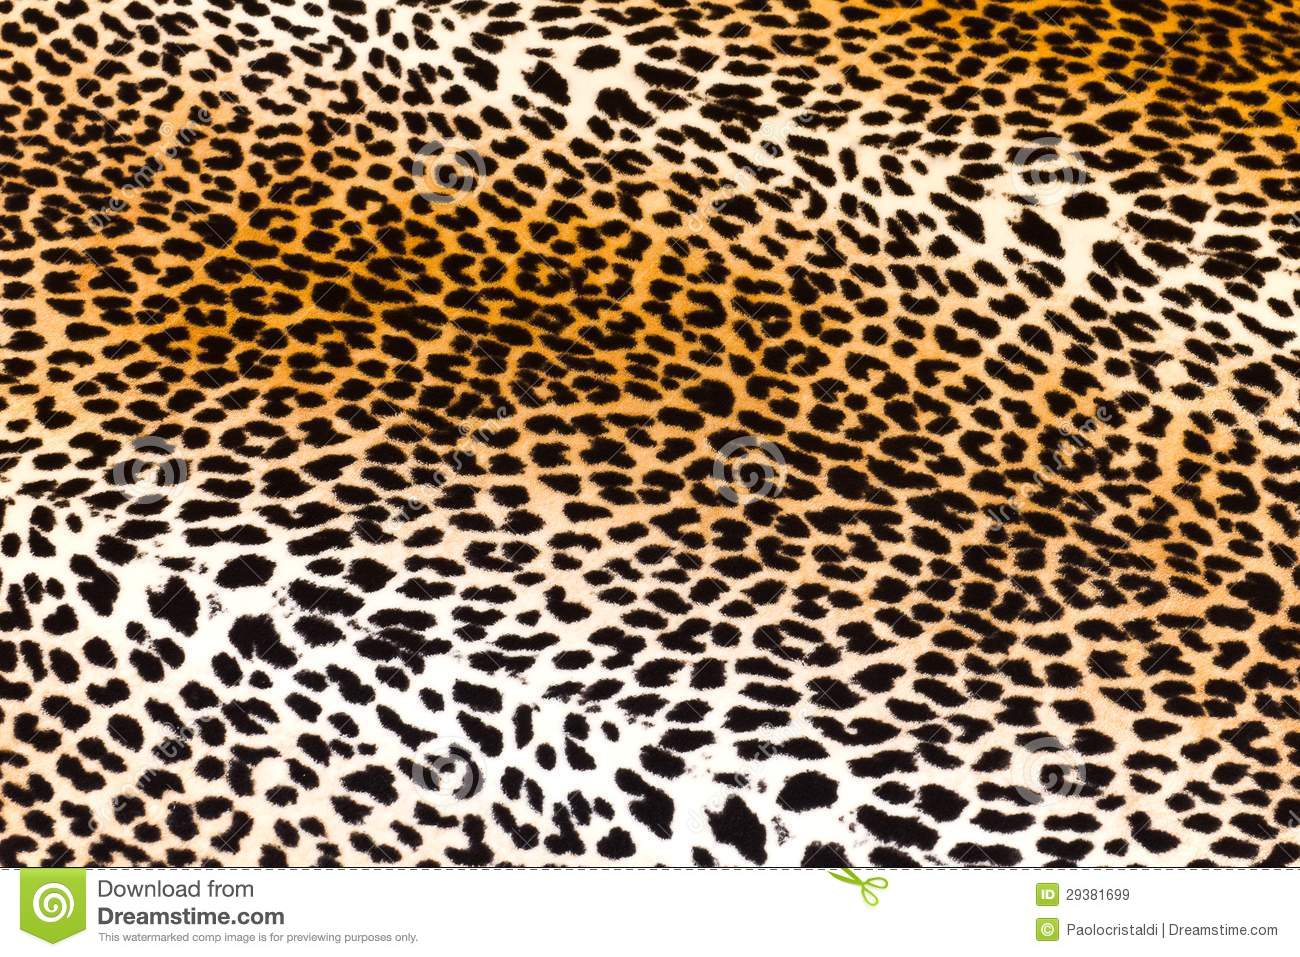 Leopard Skin Royalty Free Stock Images - Image: 29381699